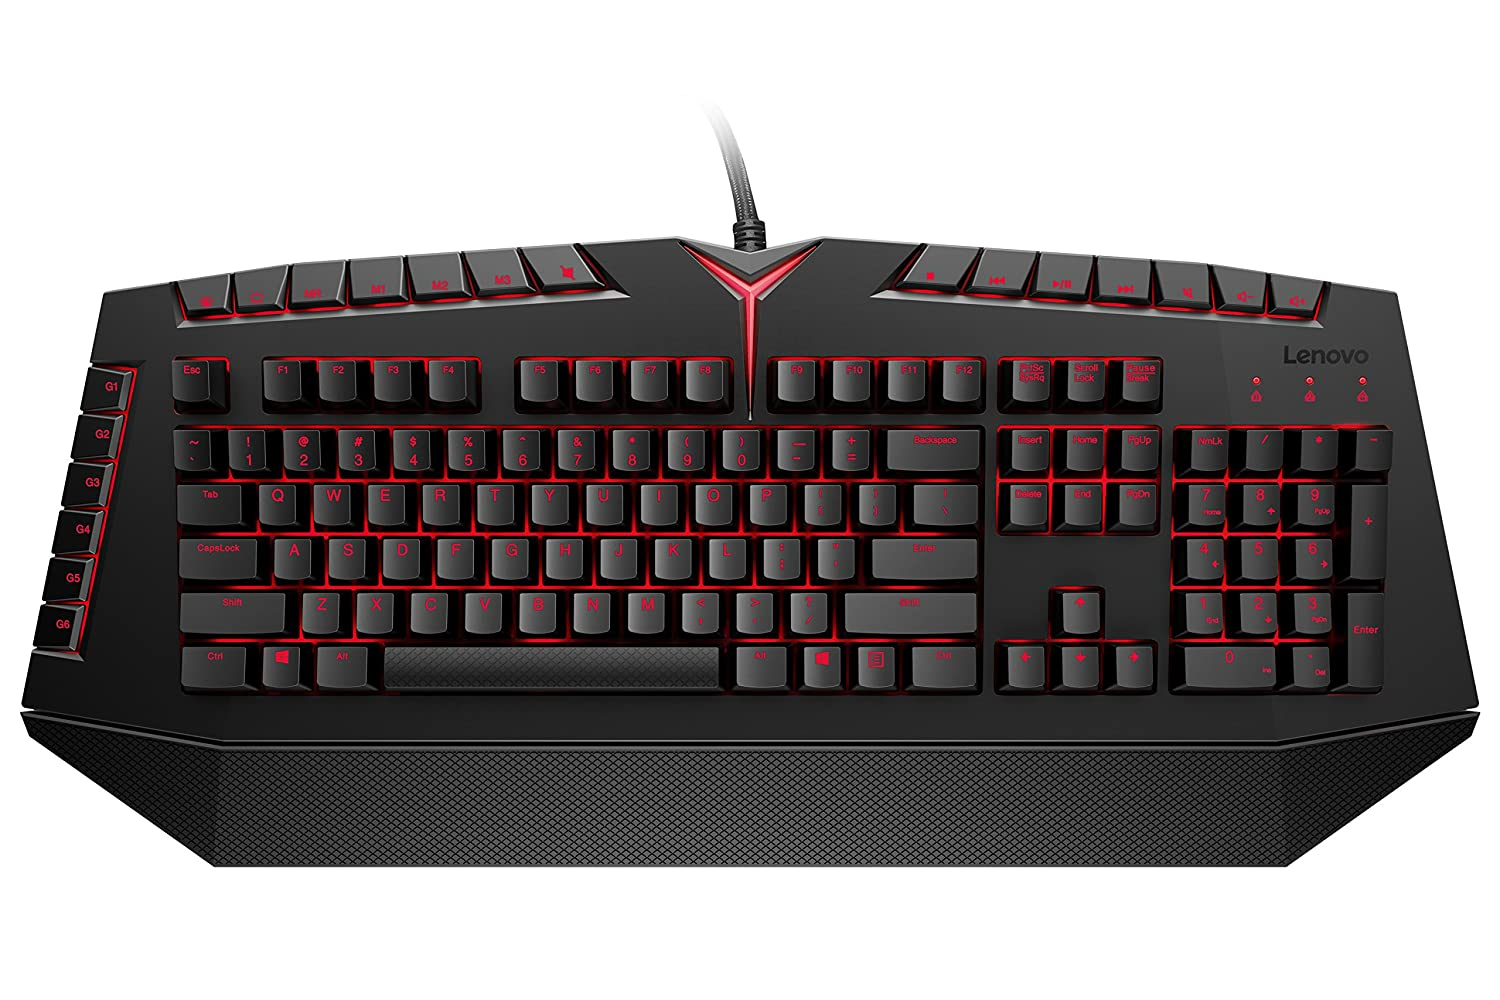 df3024600fe Amazon.com: Lenovo Legion Mechanical Gaming Keyboard, for Lenovo Legion  Y720, Y520, Y530 Gaming Laptops, GX30K04088: Computers & Accessories